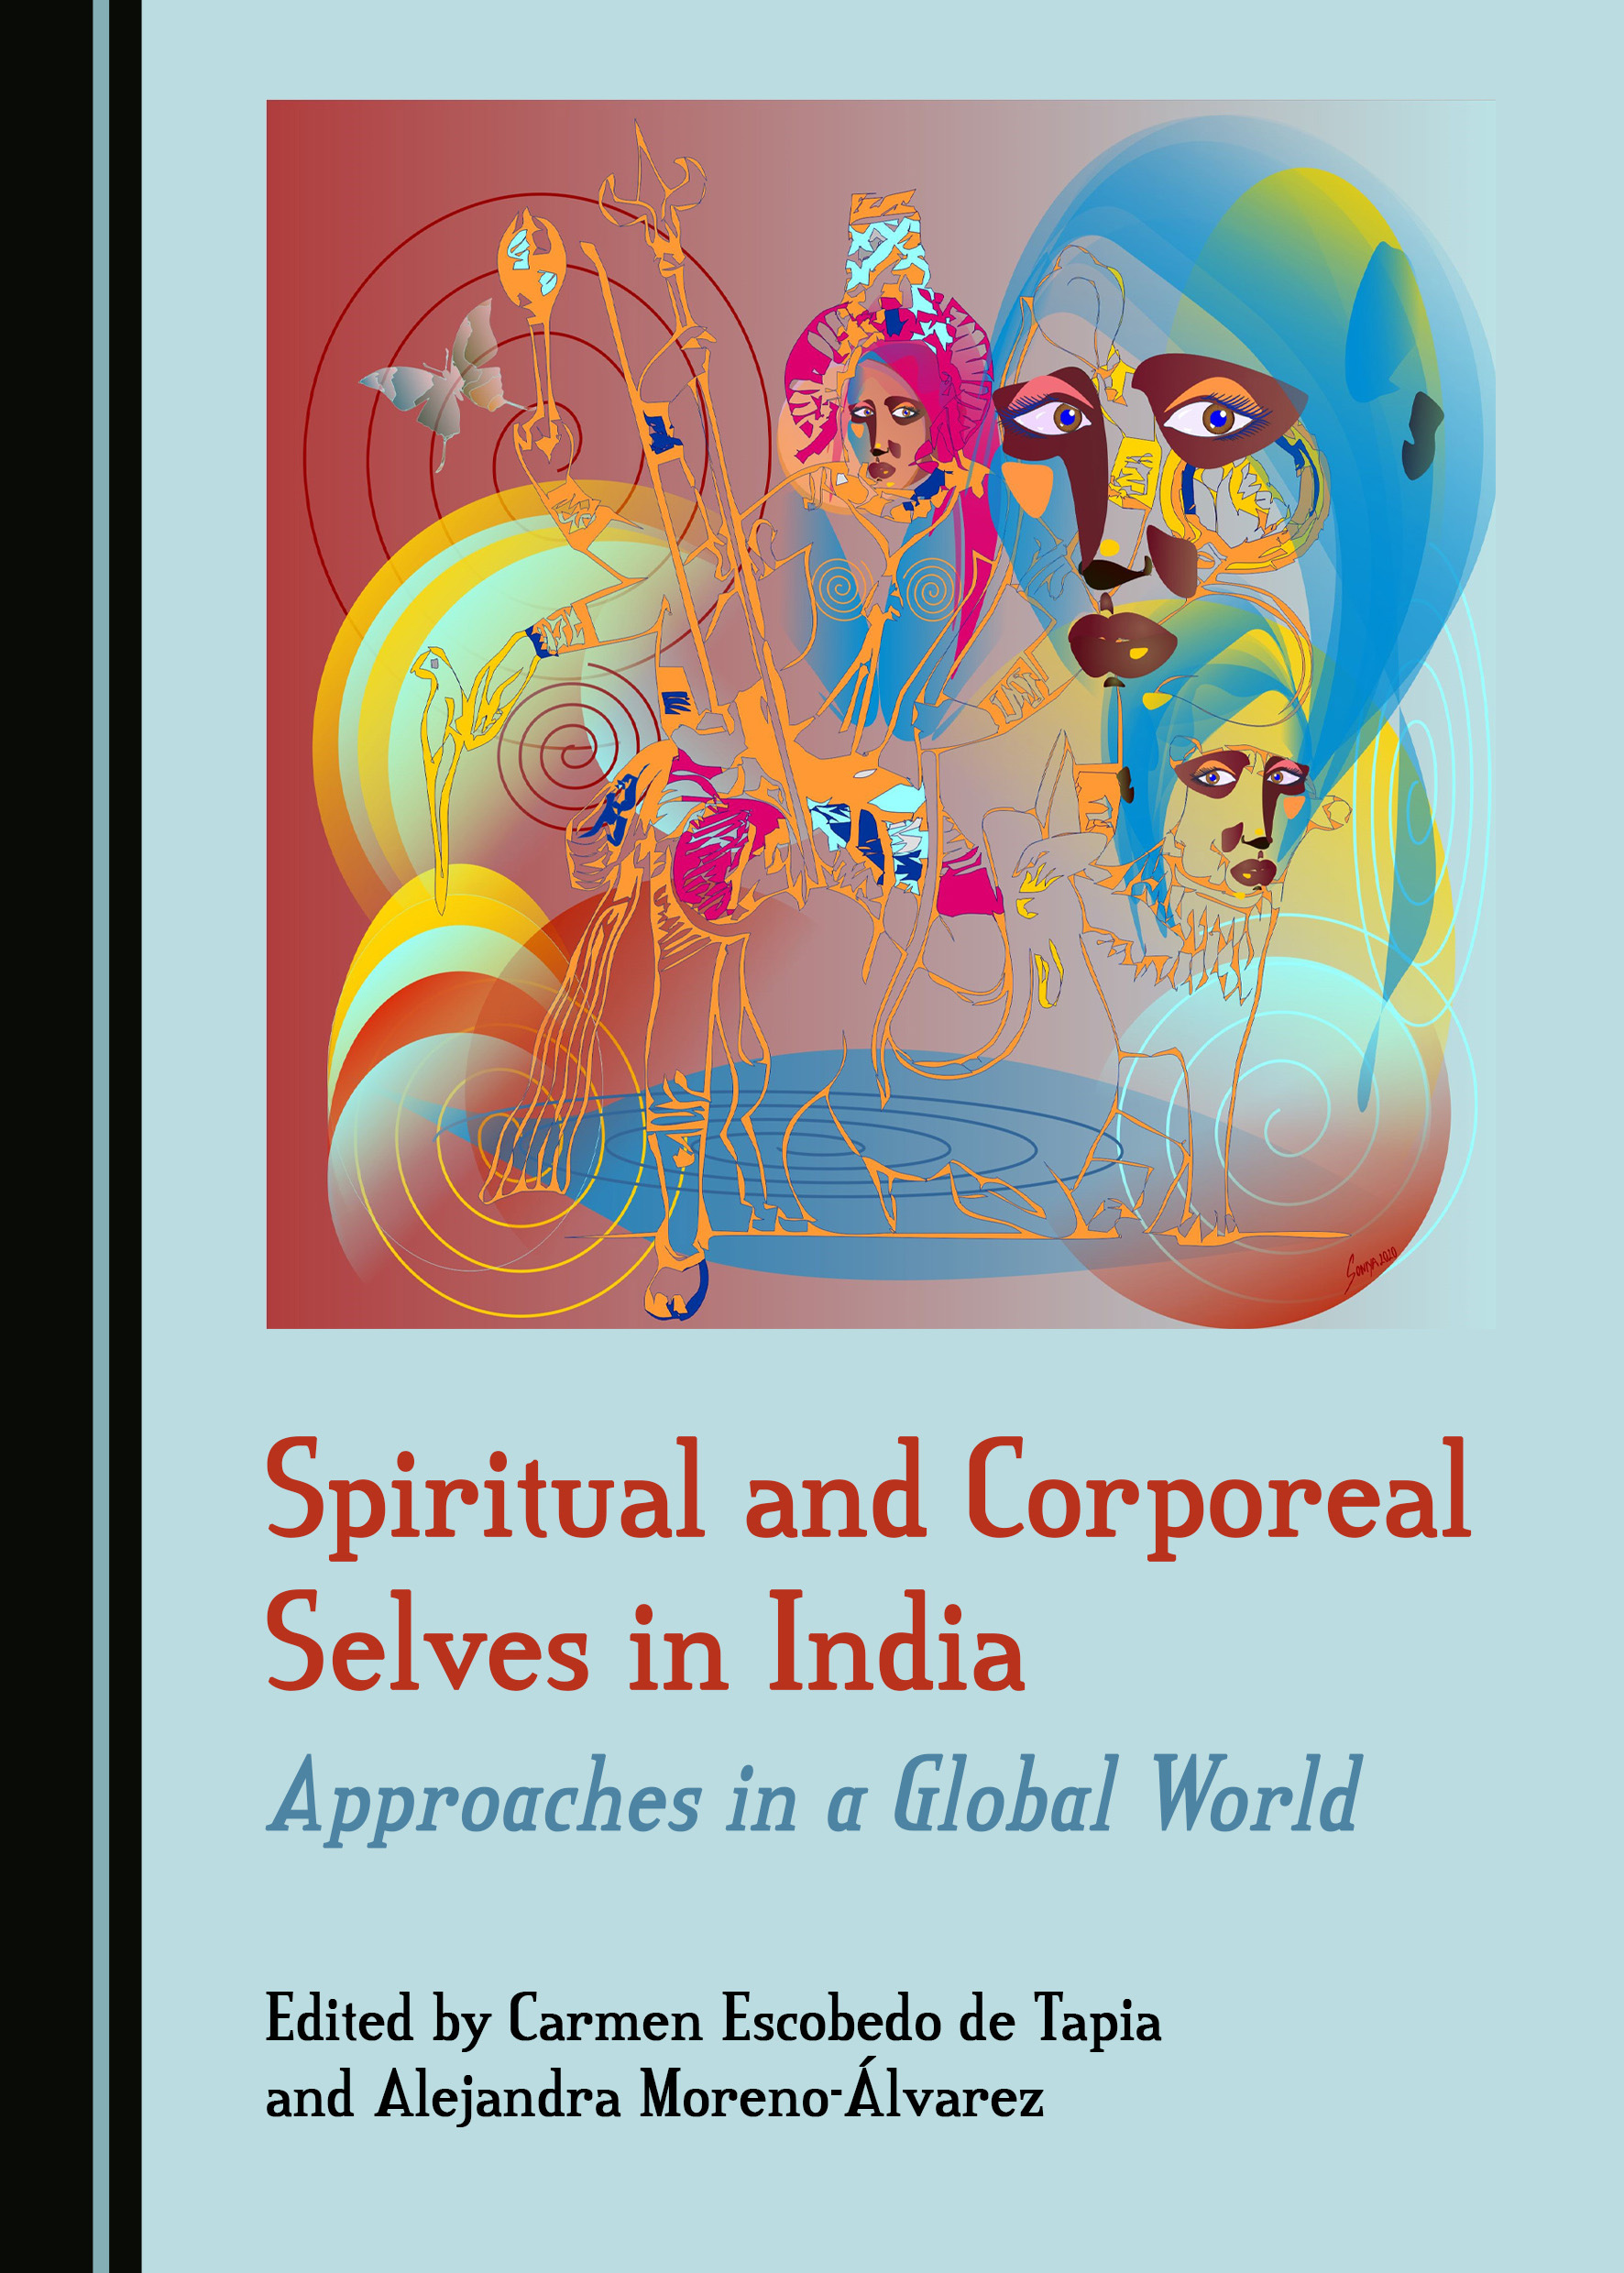 Spiritual and Corporeal Selves in India: Approaches in a Global World